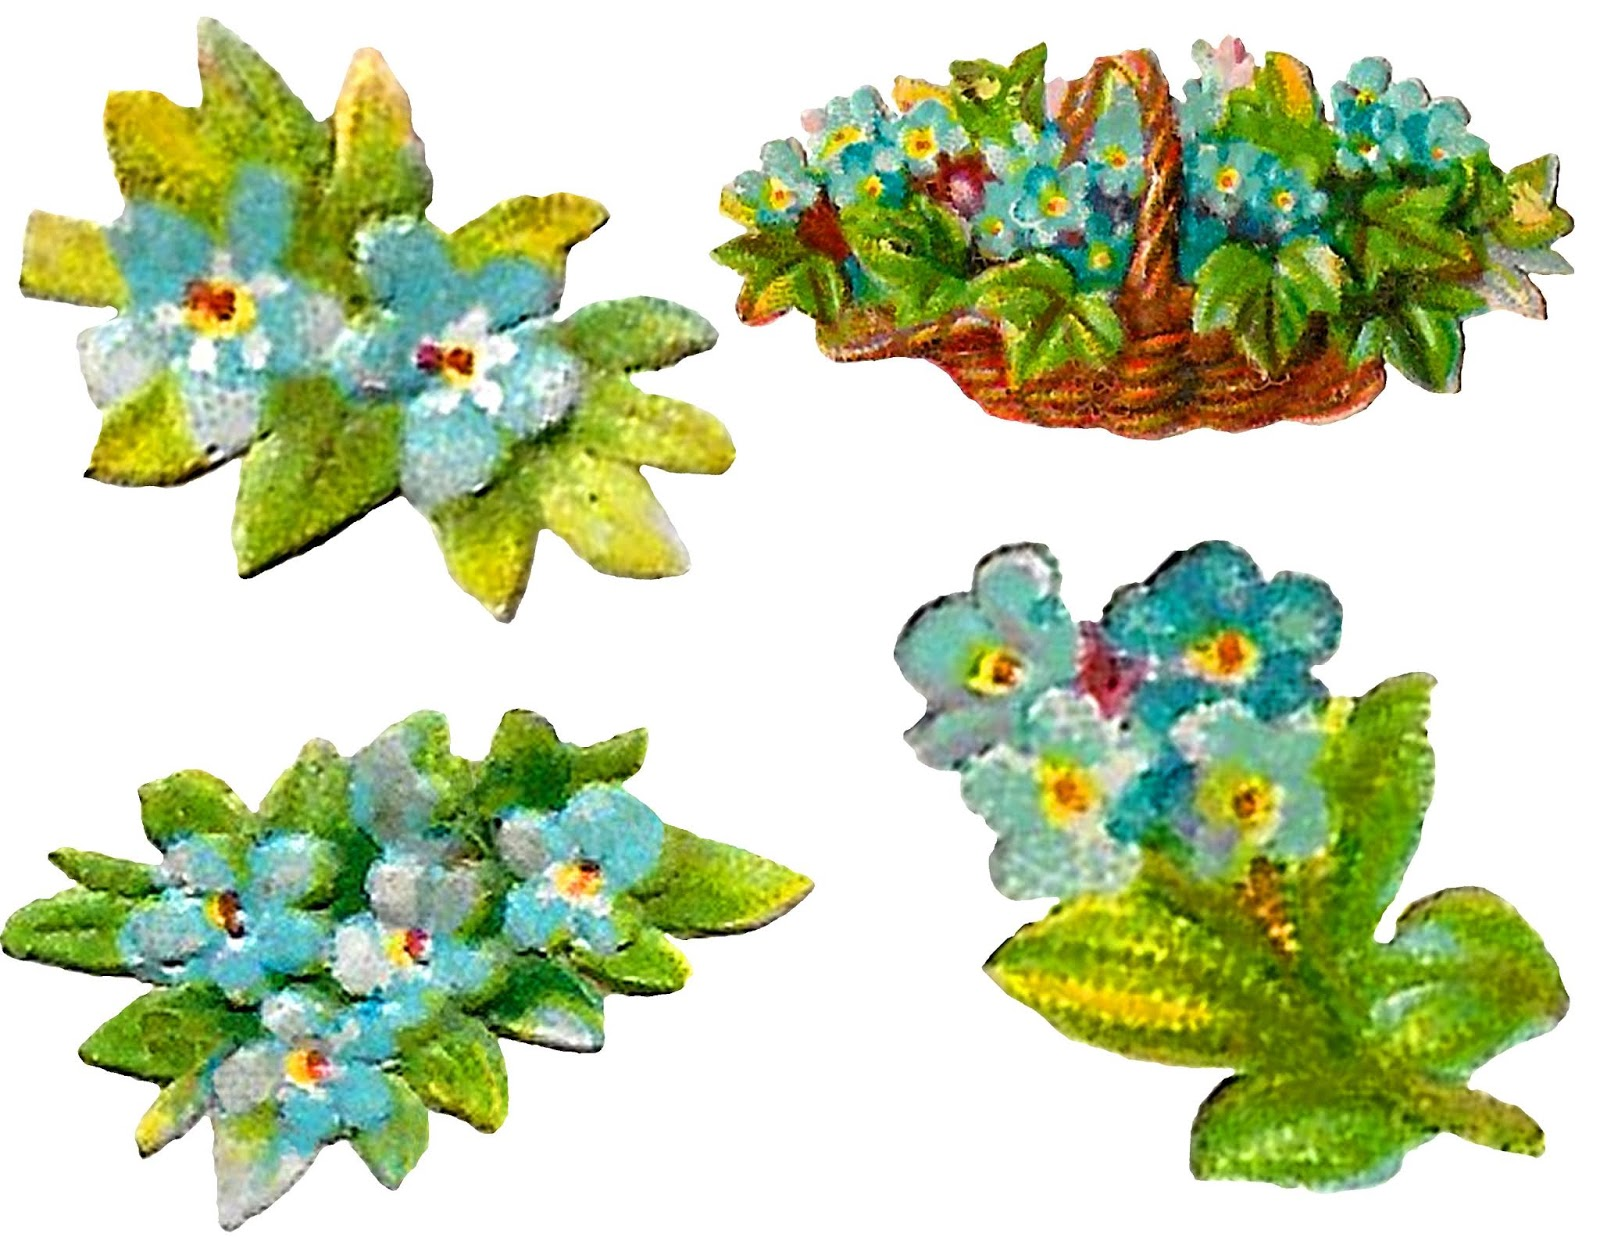 flower floral images collage sheet download forget me not clipart [ 1600 x 1237 Pixel ]